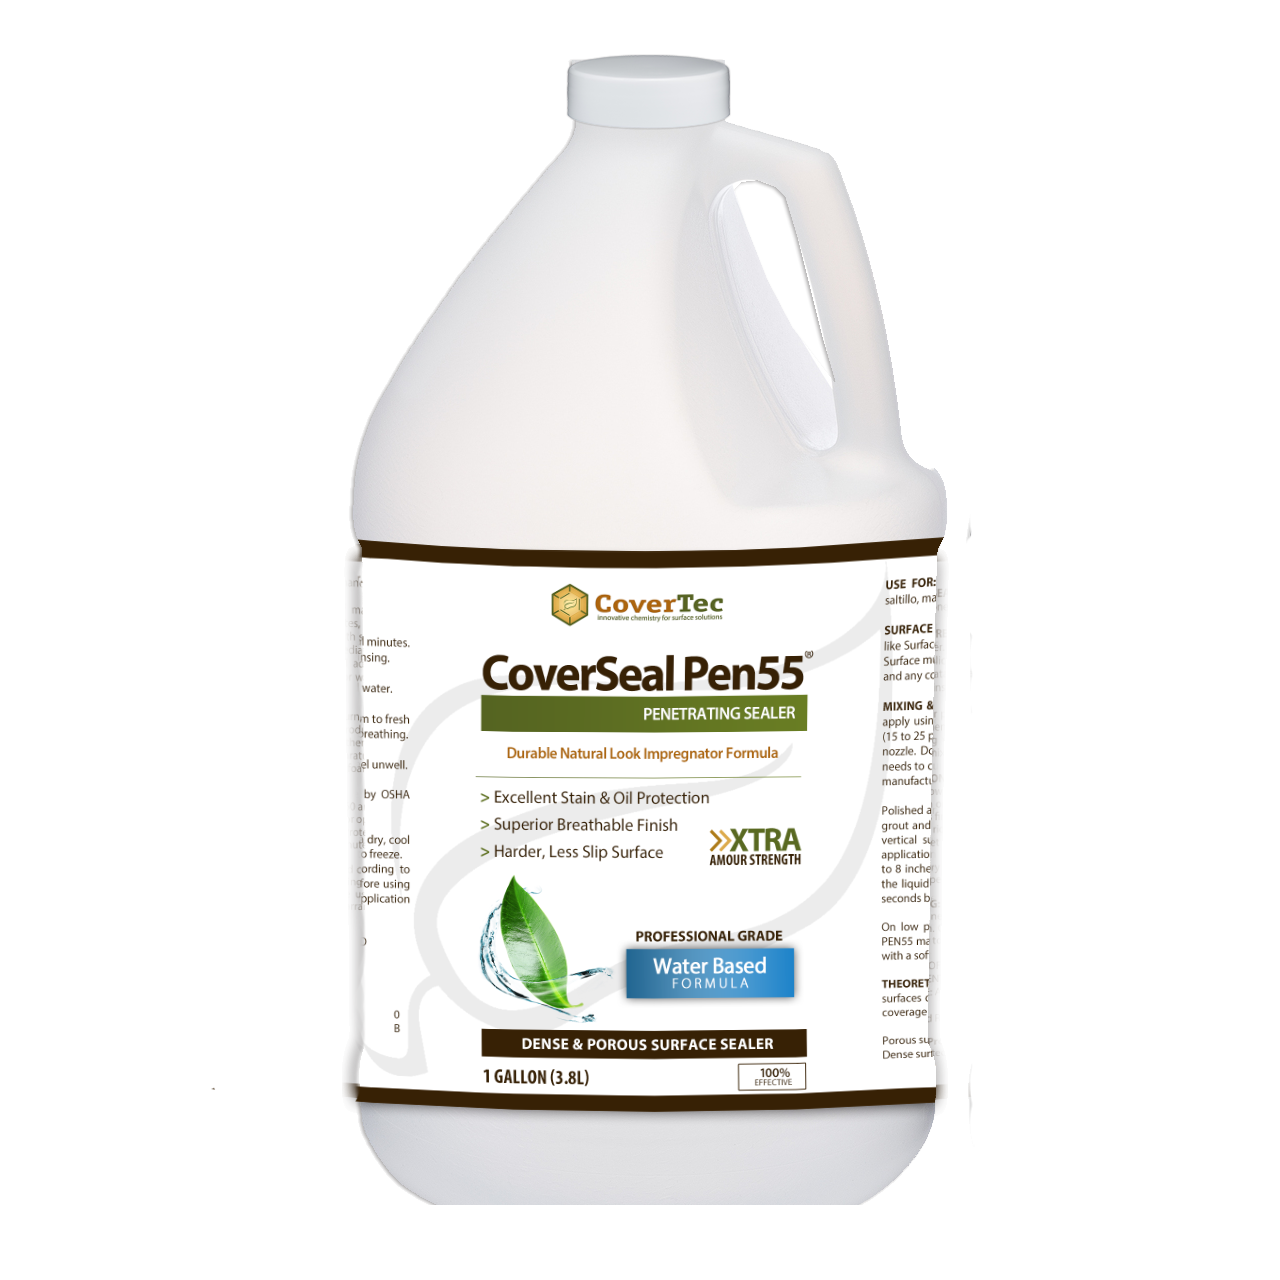 CoverSeal PEN55 Oil And Stain Resistant Penetrating Sealer